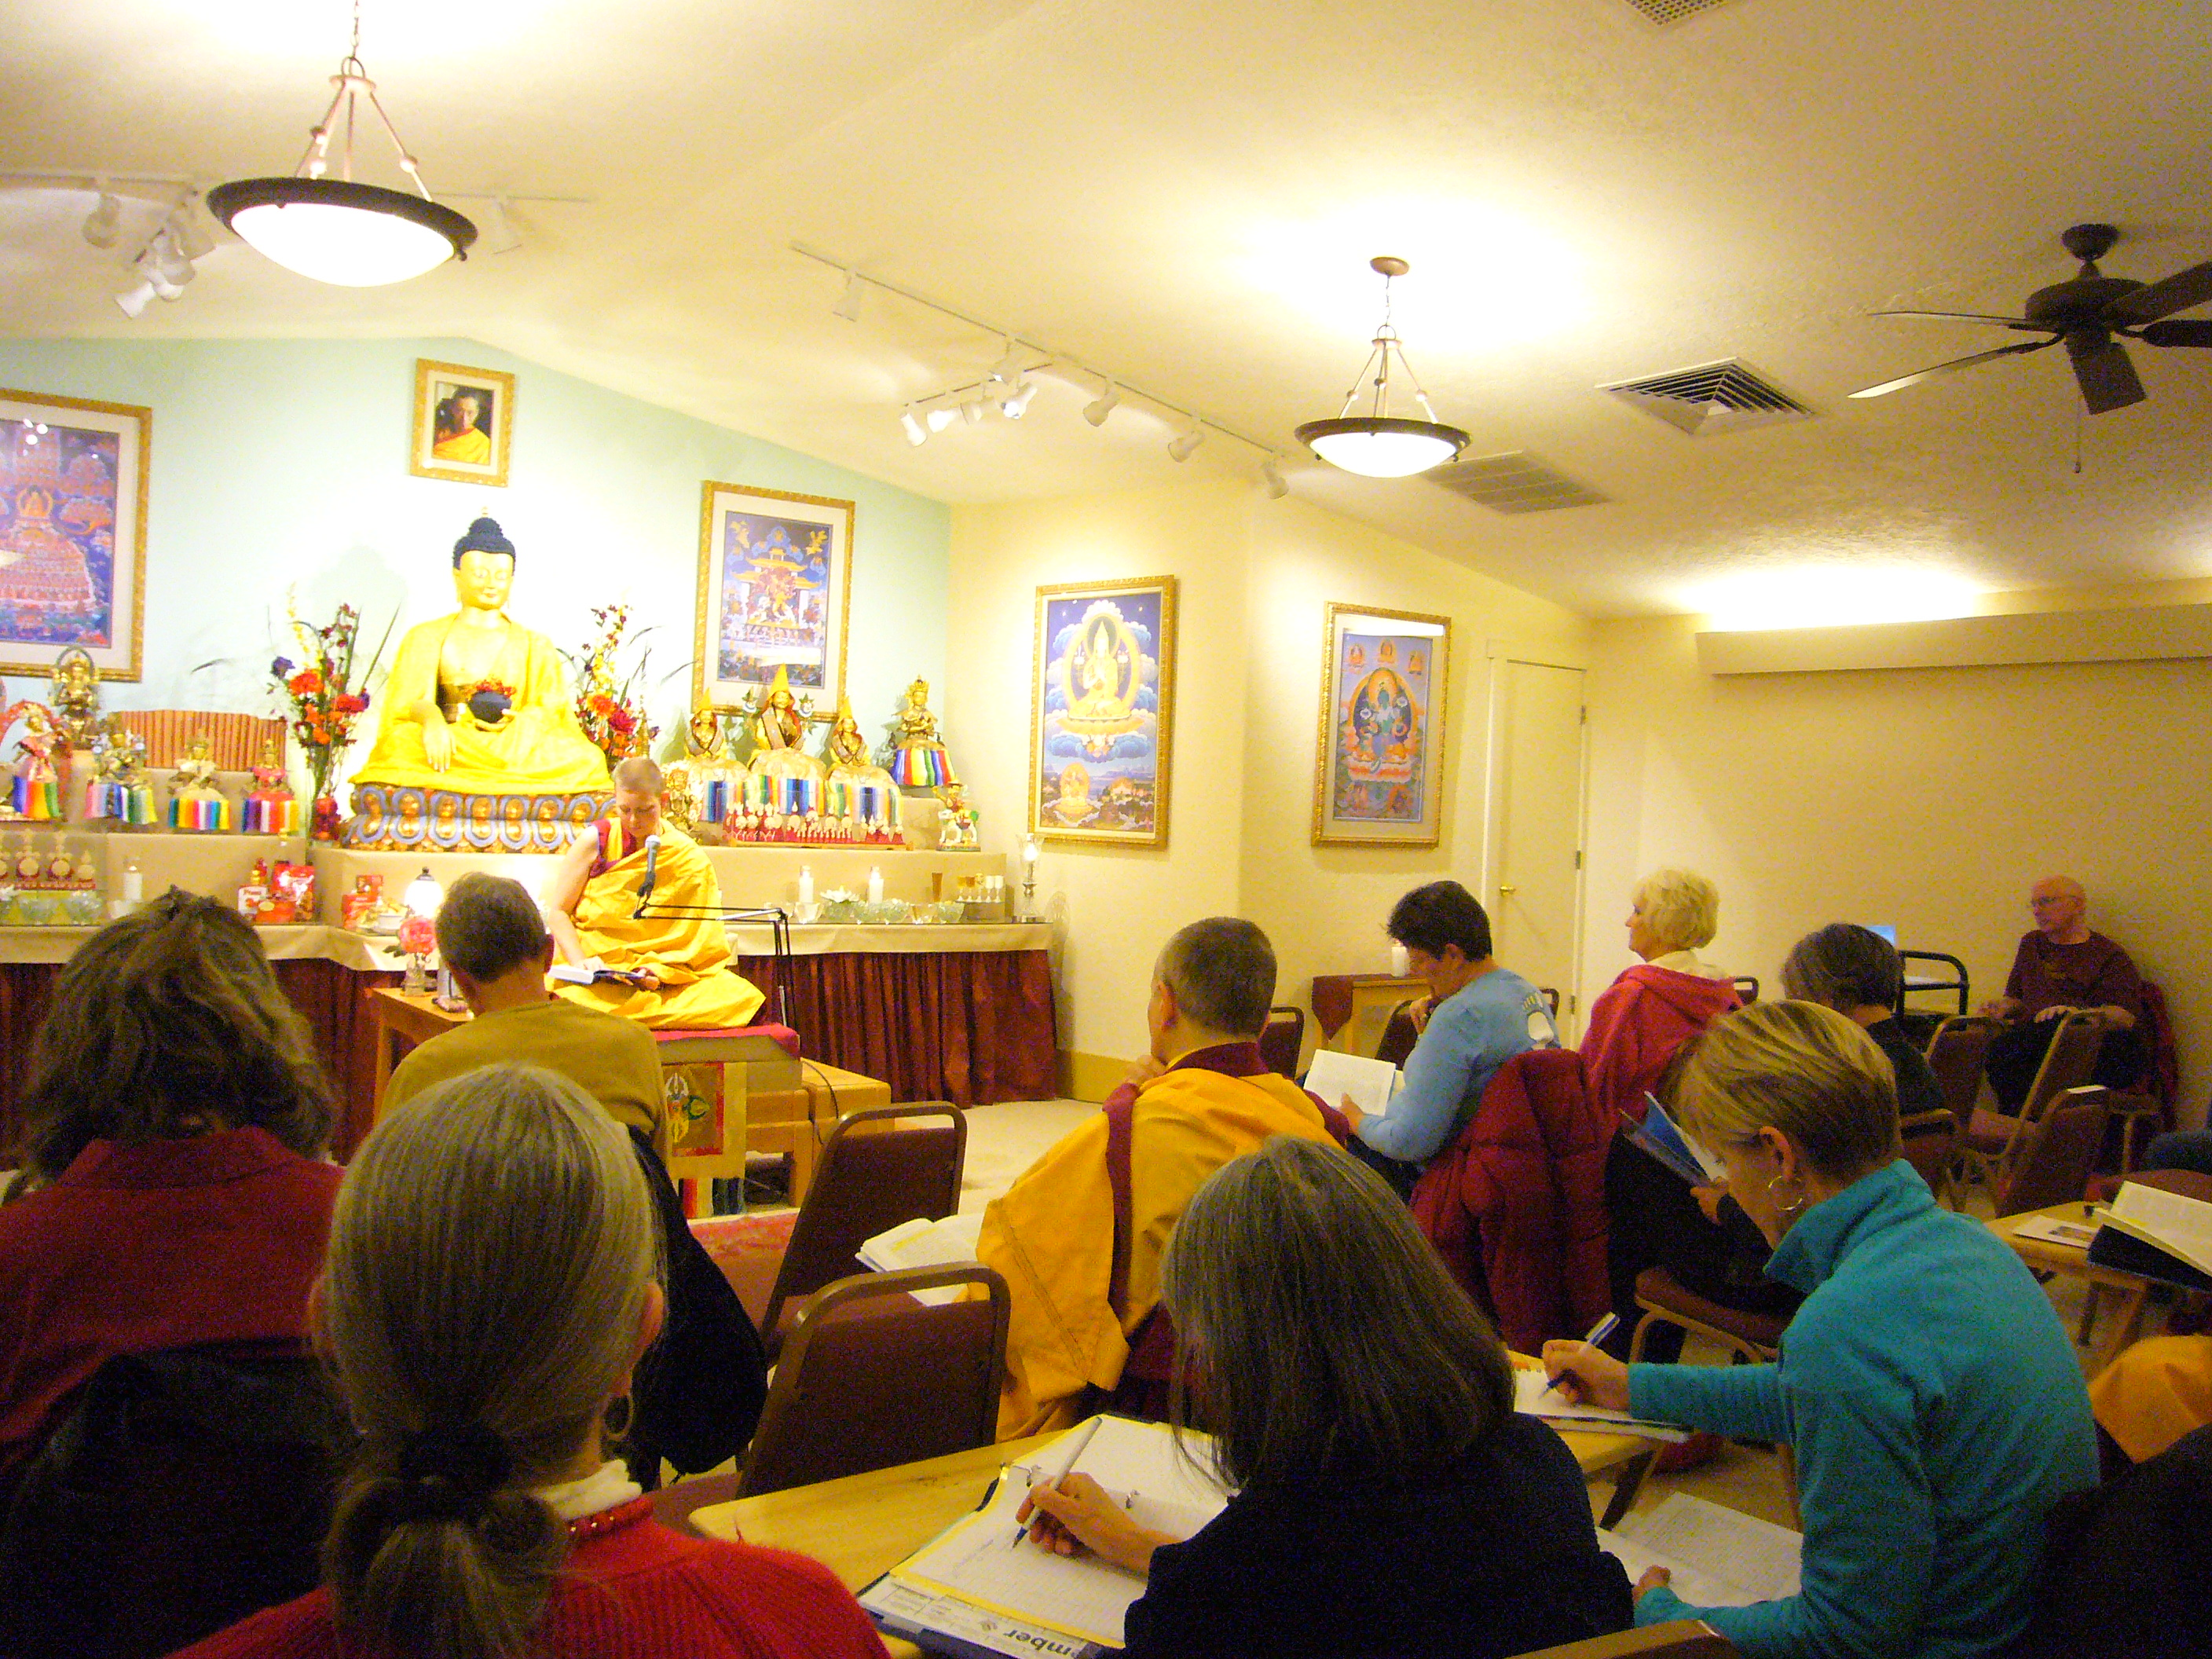 Study & Meditation Program Is A Newly Designed Program By Geshe Kelsang  Gyatso It Is Tailored To Meet The Needs Of Urban People In Busy, Everyday  Life